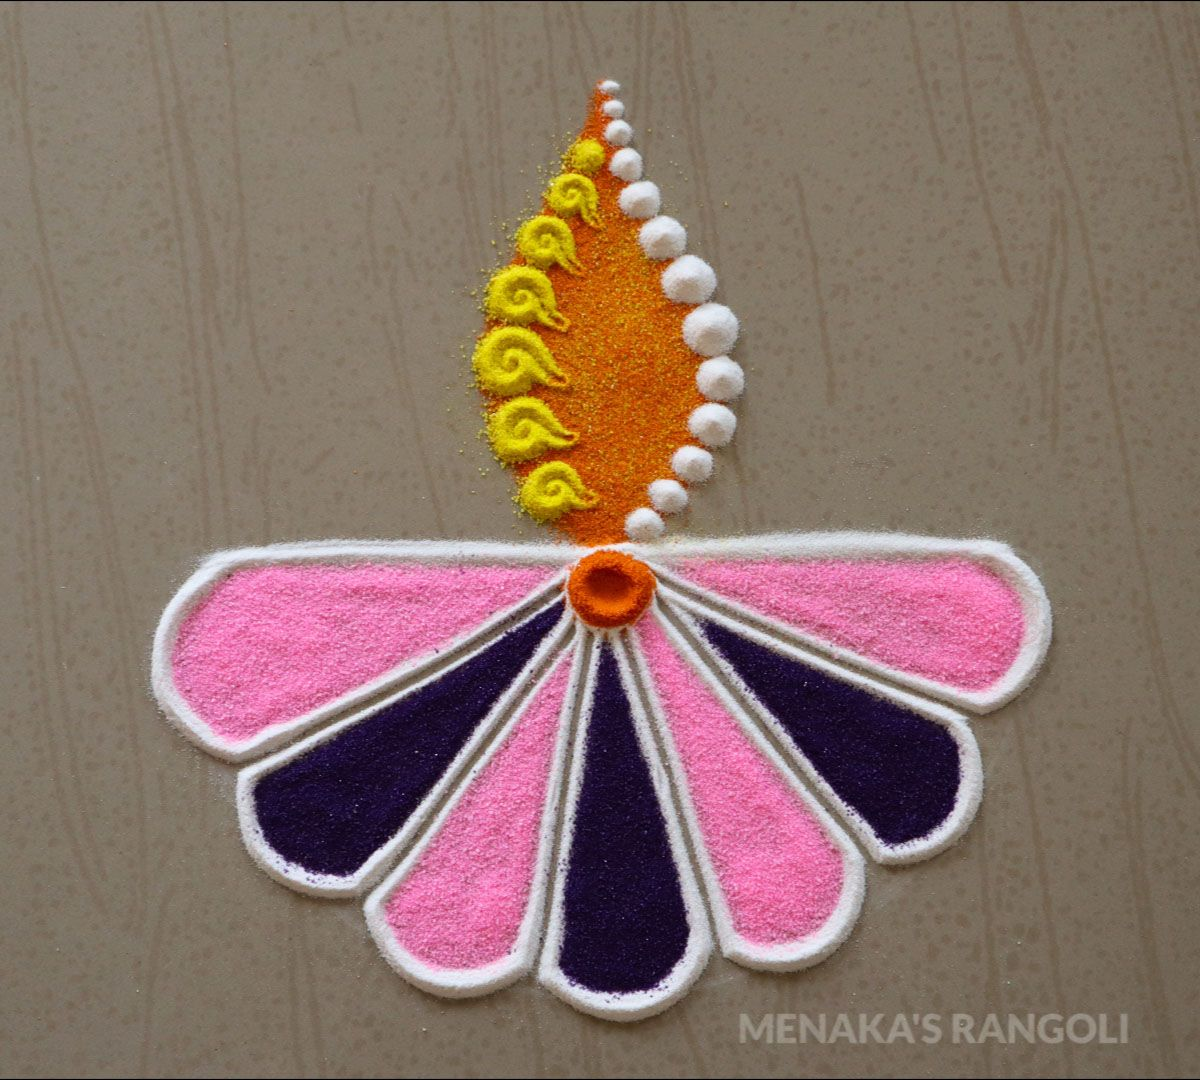 Pin by Menaka's Rangoli on Color Rangoli Designs Diya